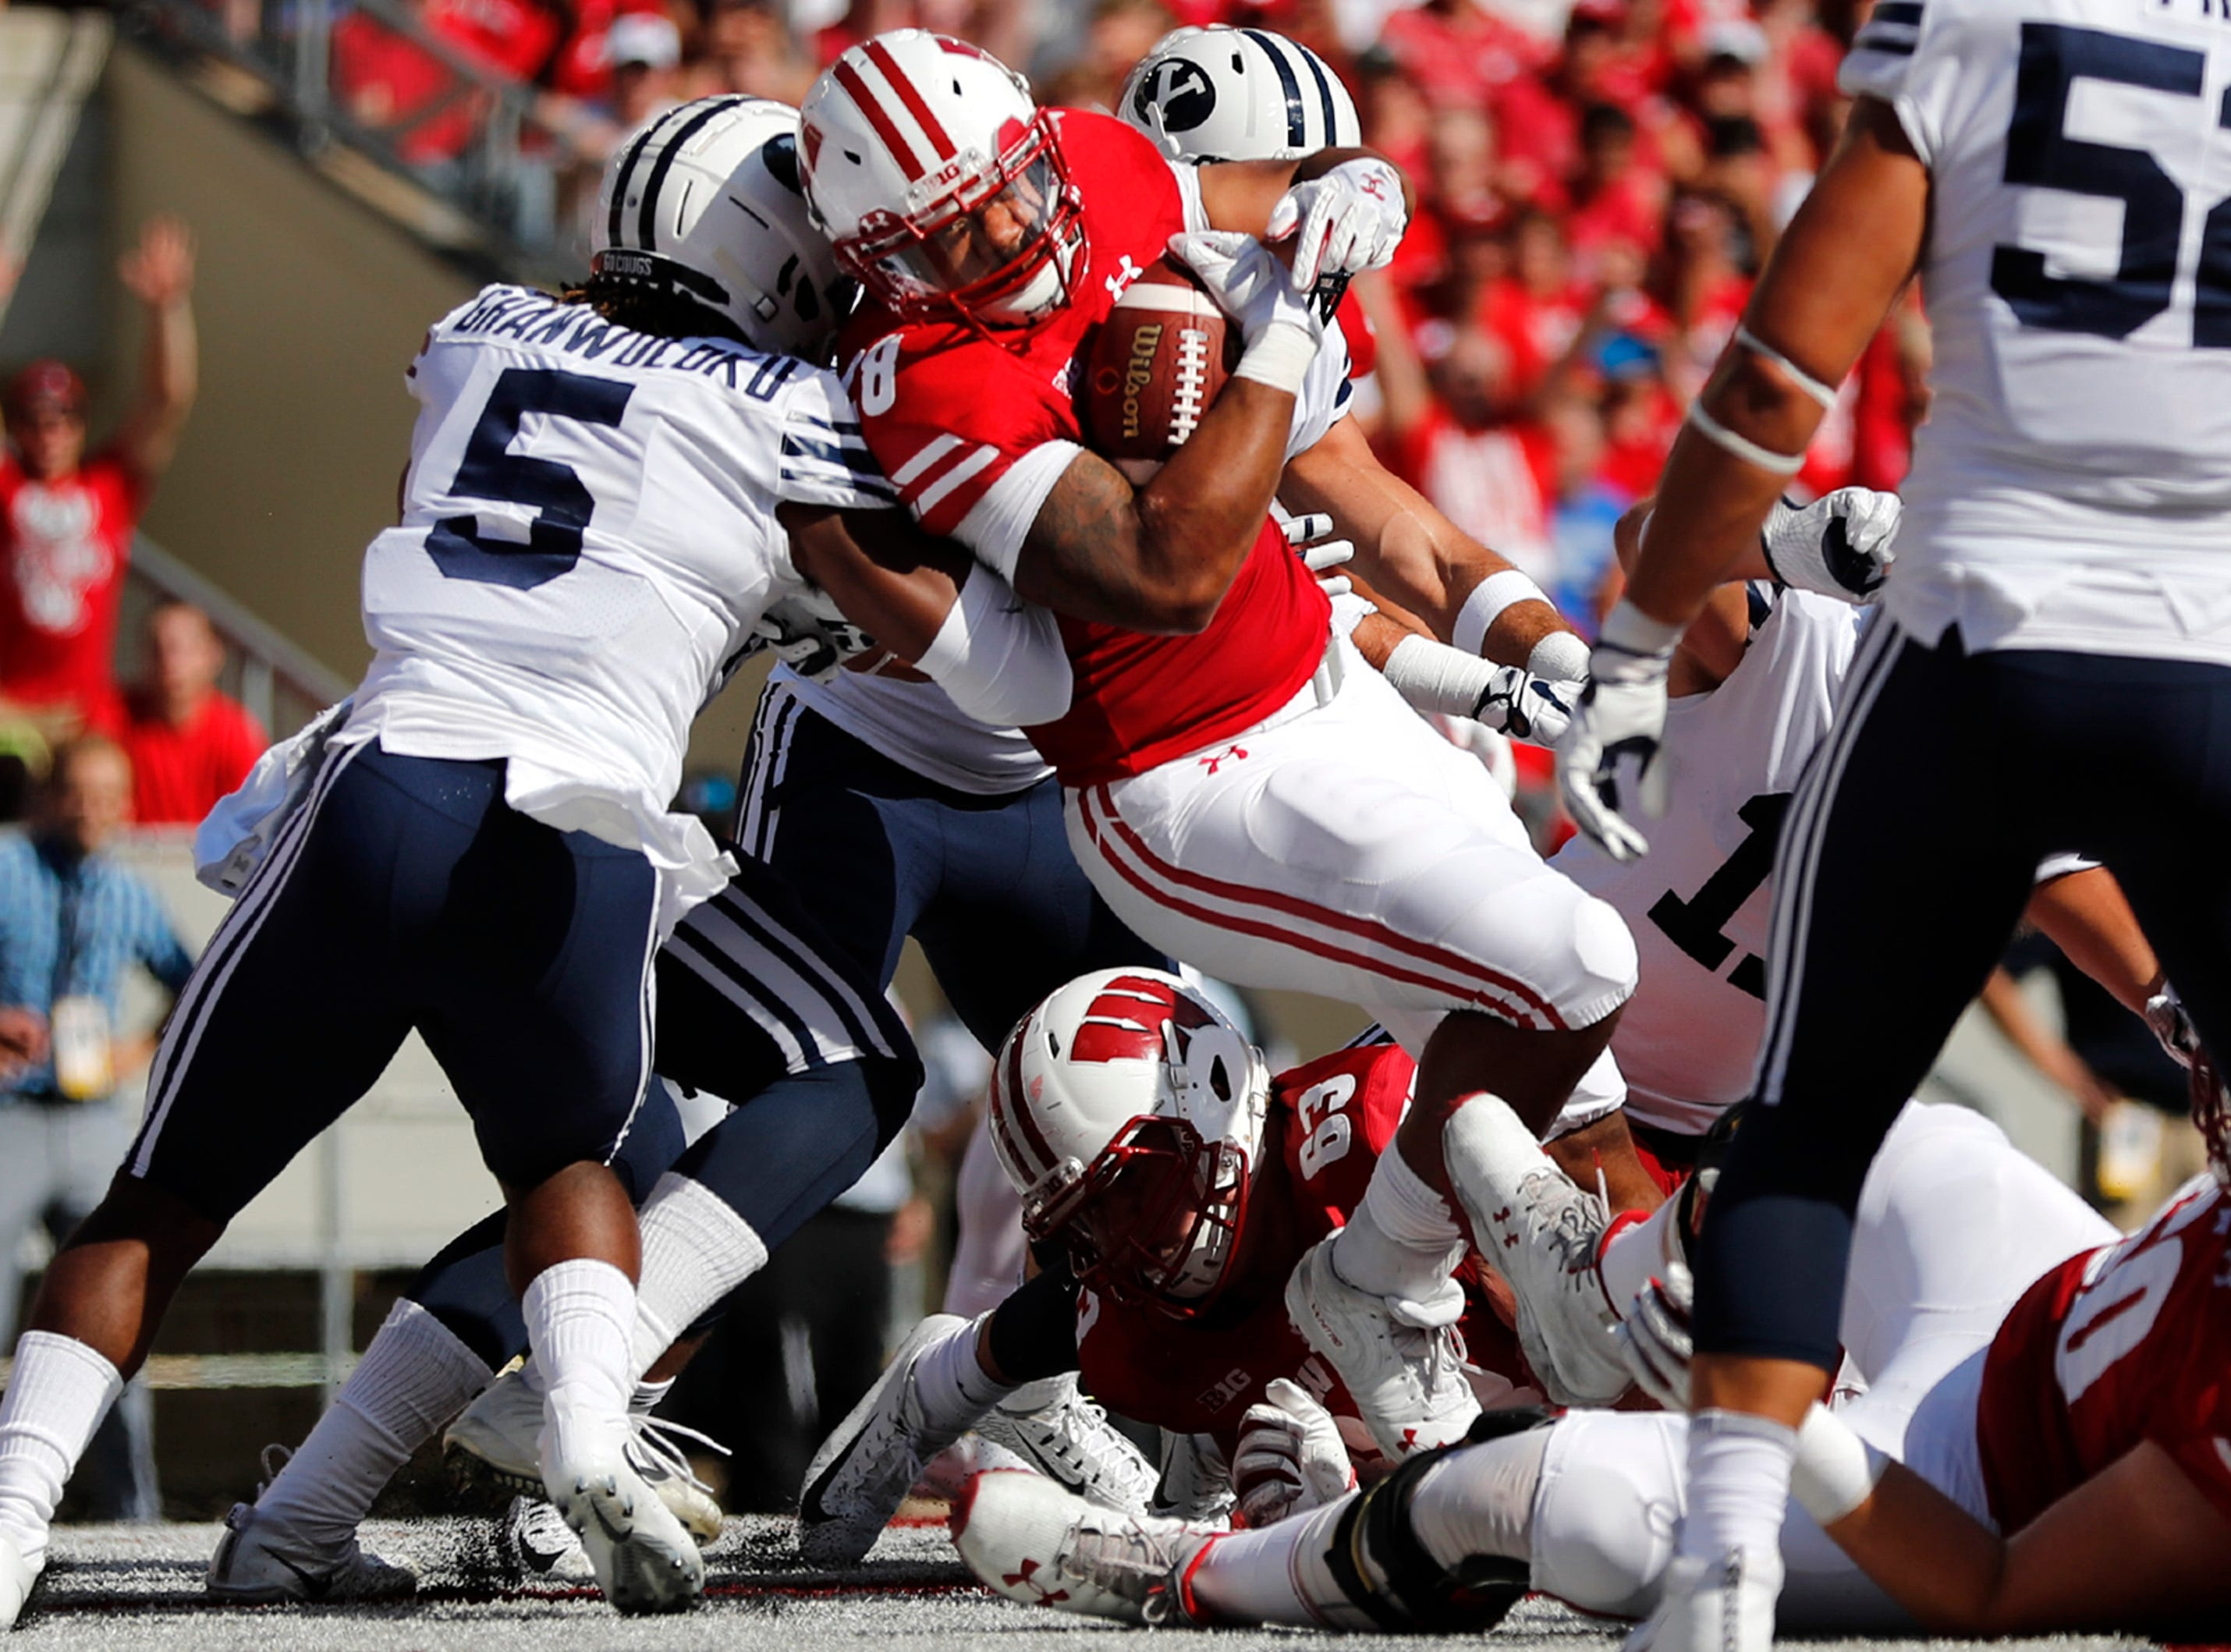 Wisconsin Badgers running back Taiwan Deal (28) runs into the end zone for a touchdown against the Brigham Young Cougars Saturday, Sept. 15, 2018, at Camp Randall Stadium in Madison, Wis.Danny Damiani/USA TODAY NETWORK-Wisconsin